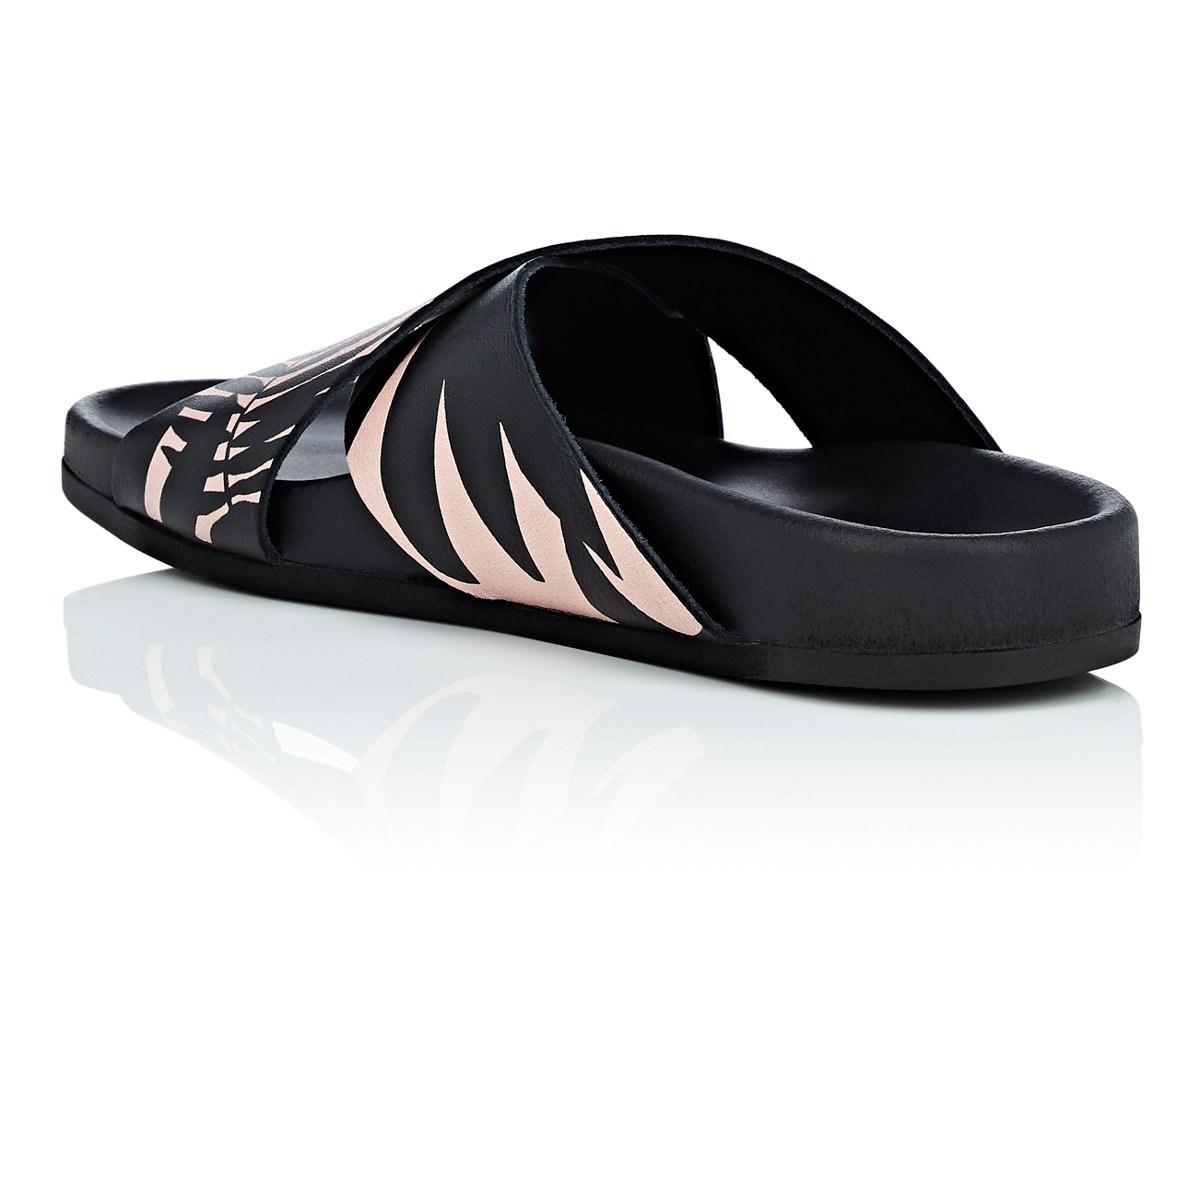 393c628c2a10 Barneys New York - Black Floral Leather Slide Sandals Size 9 - Lyst. View  fullscreen